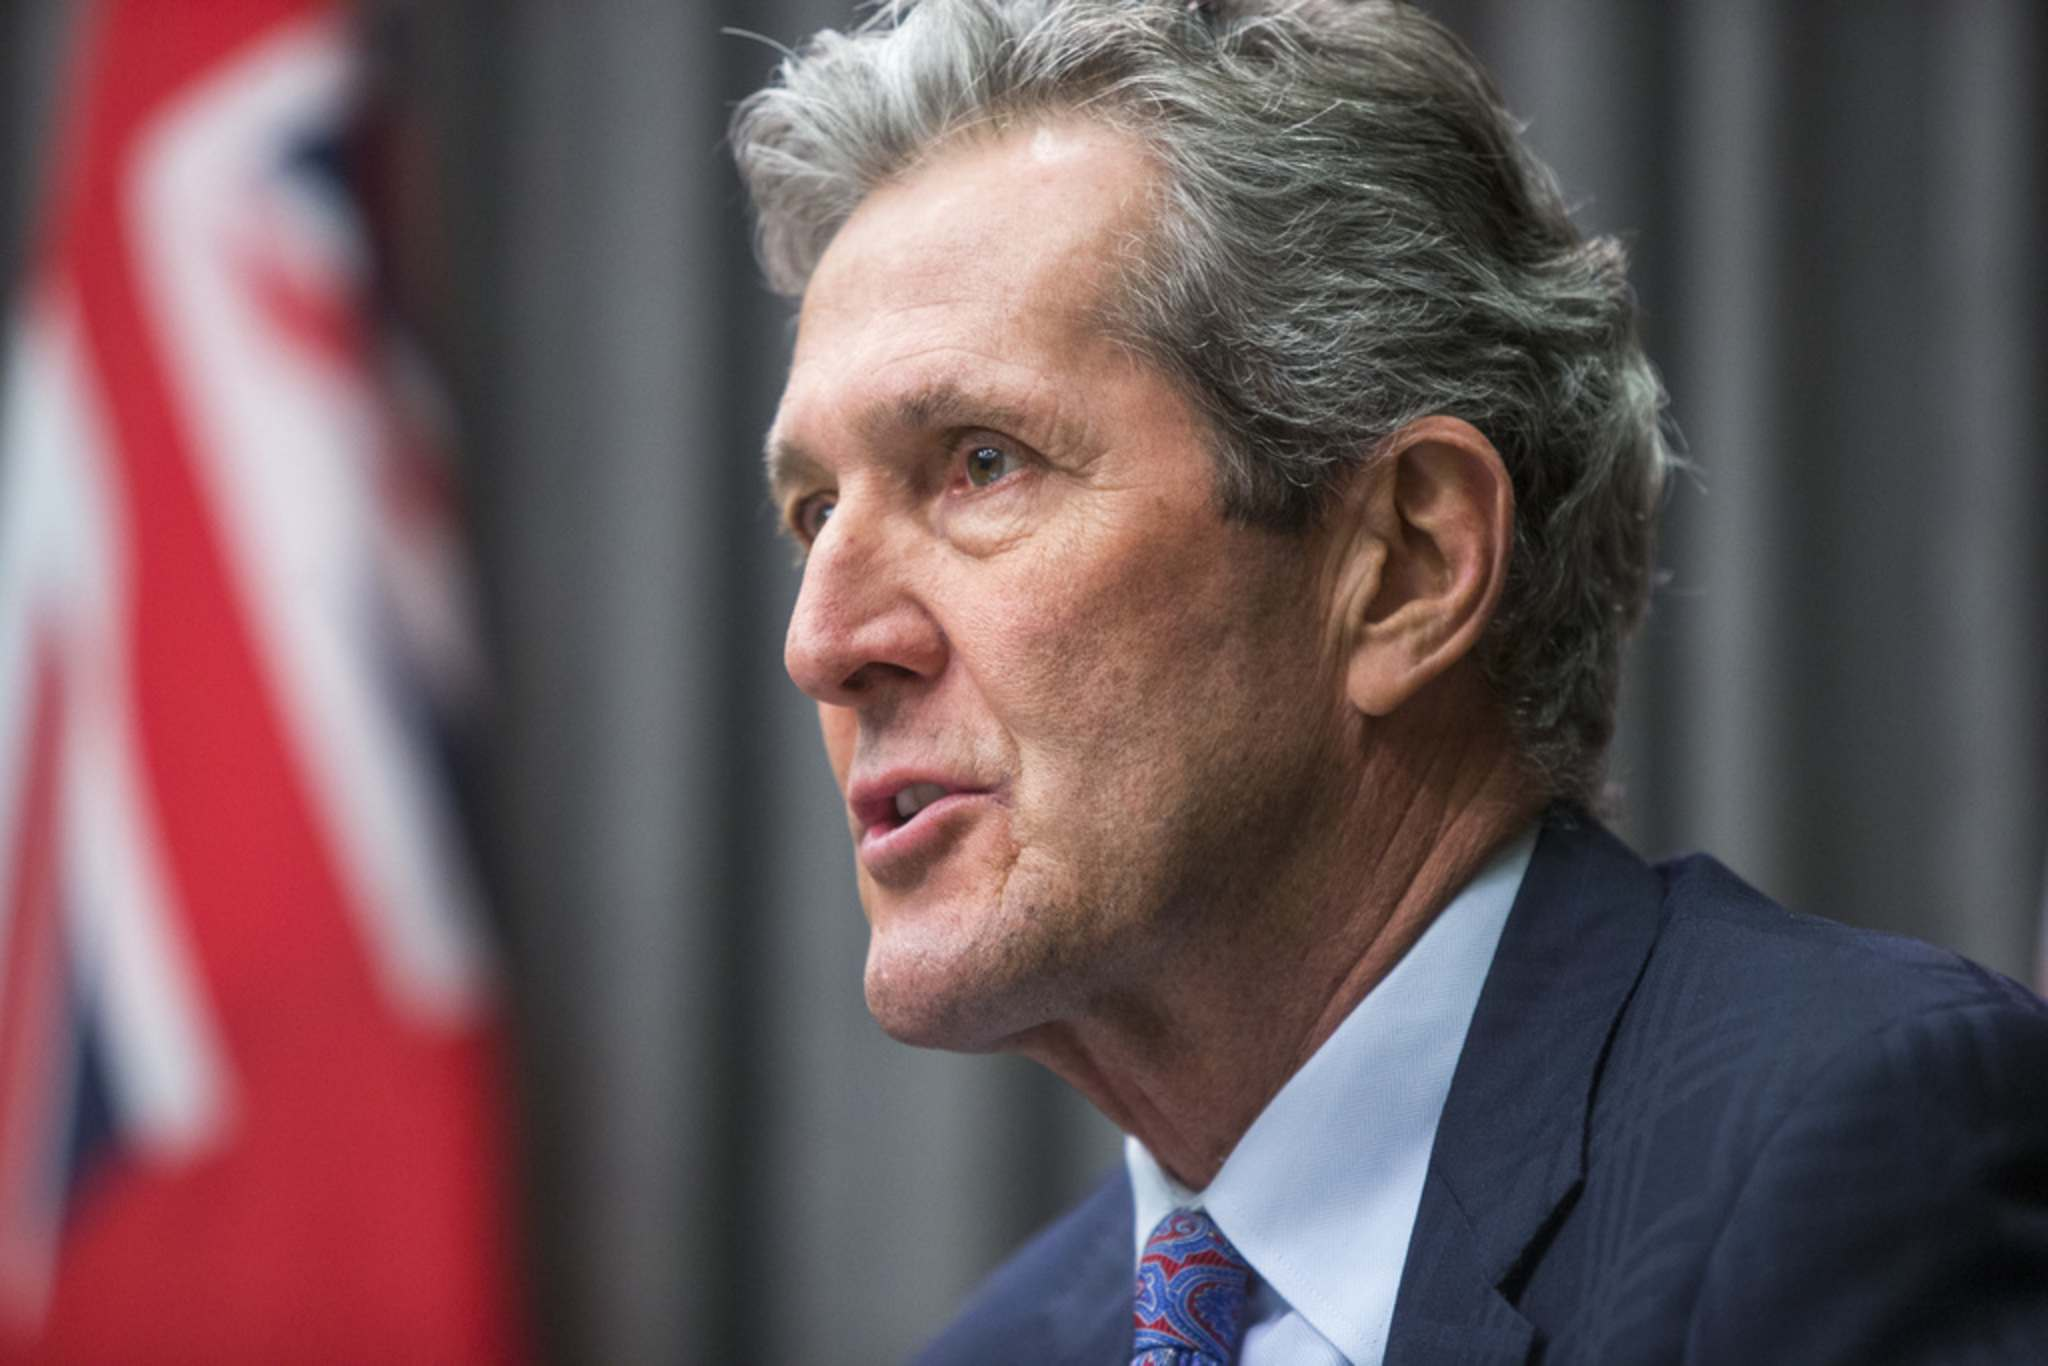 MIKAELA MACKENZIE / WINNIPEG FREE PRESS</p><p>Premier Brian Pallister's government has hired a COVID-19 immunization director but has refused to reveal who it is.</p>